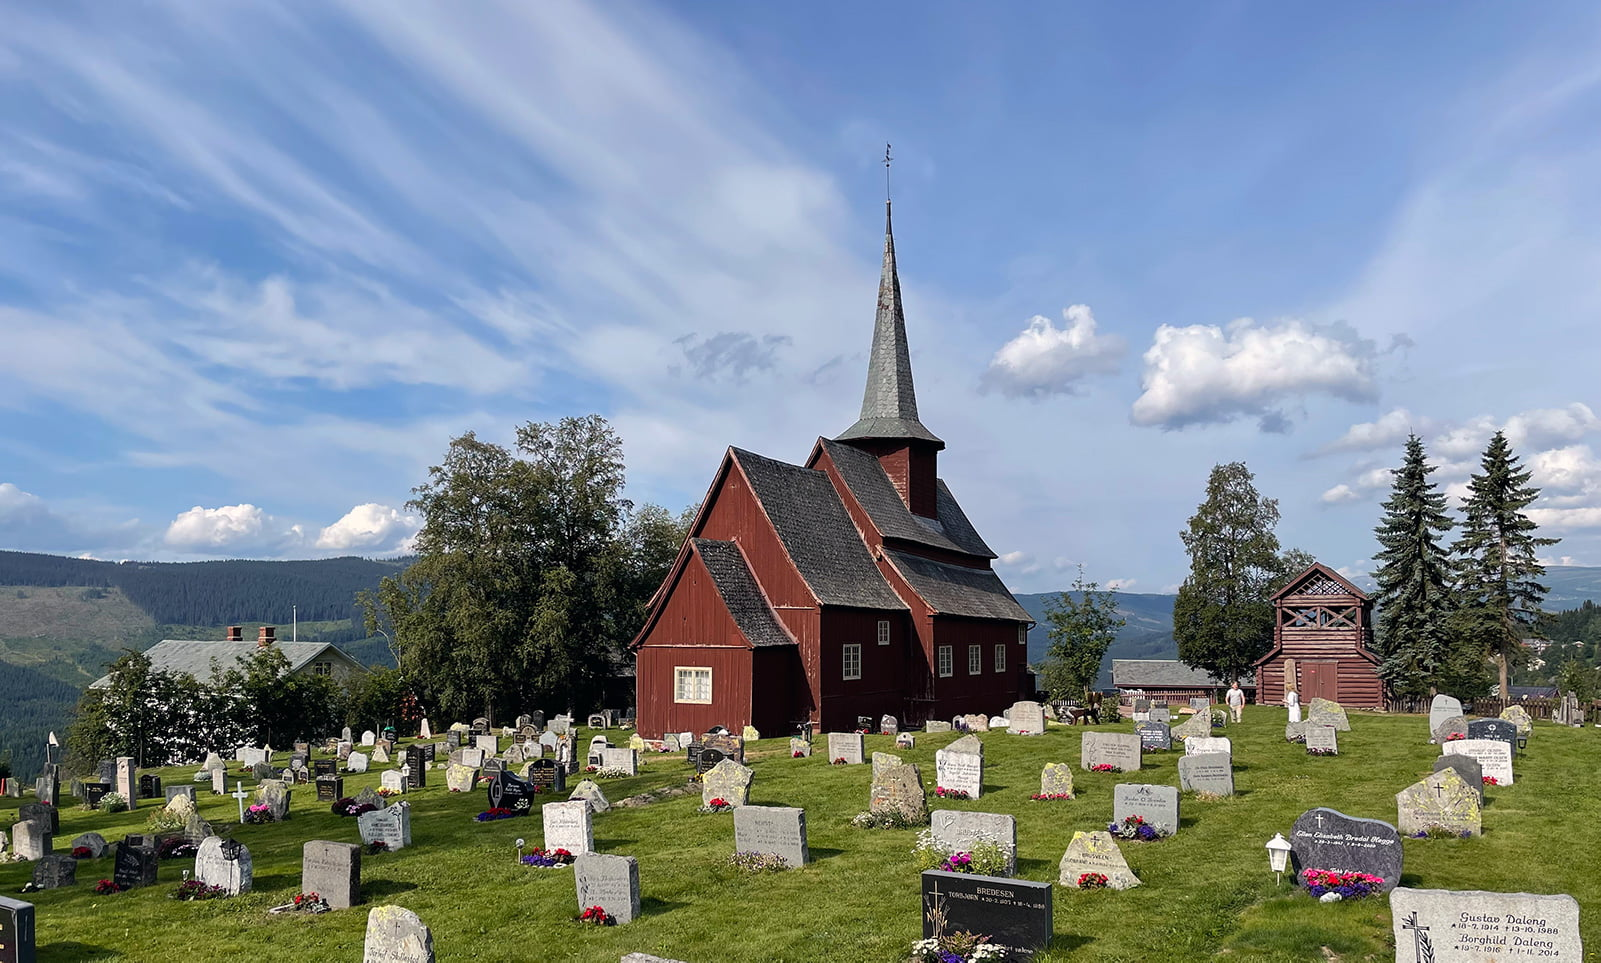 Hegge Stave Church in Norway